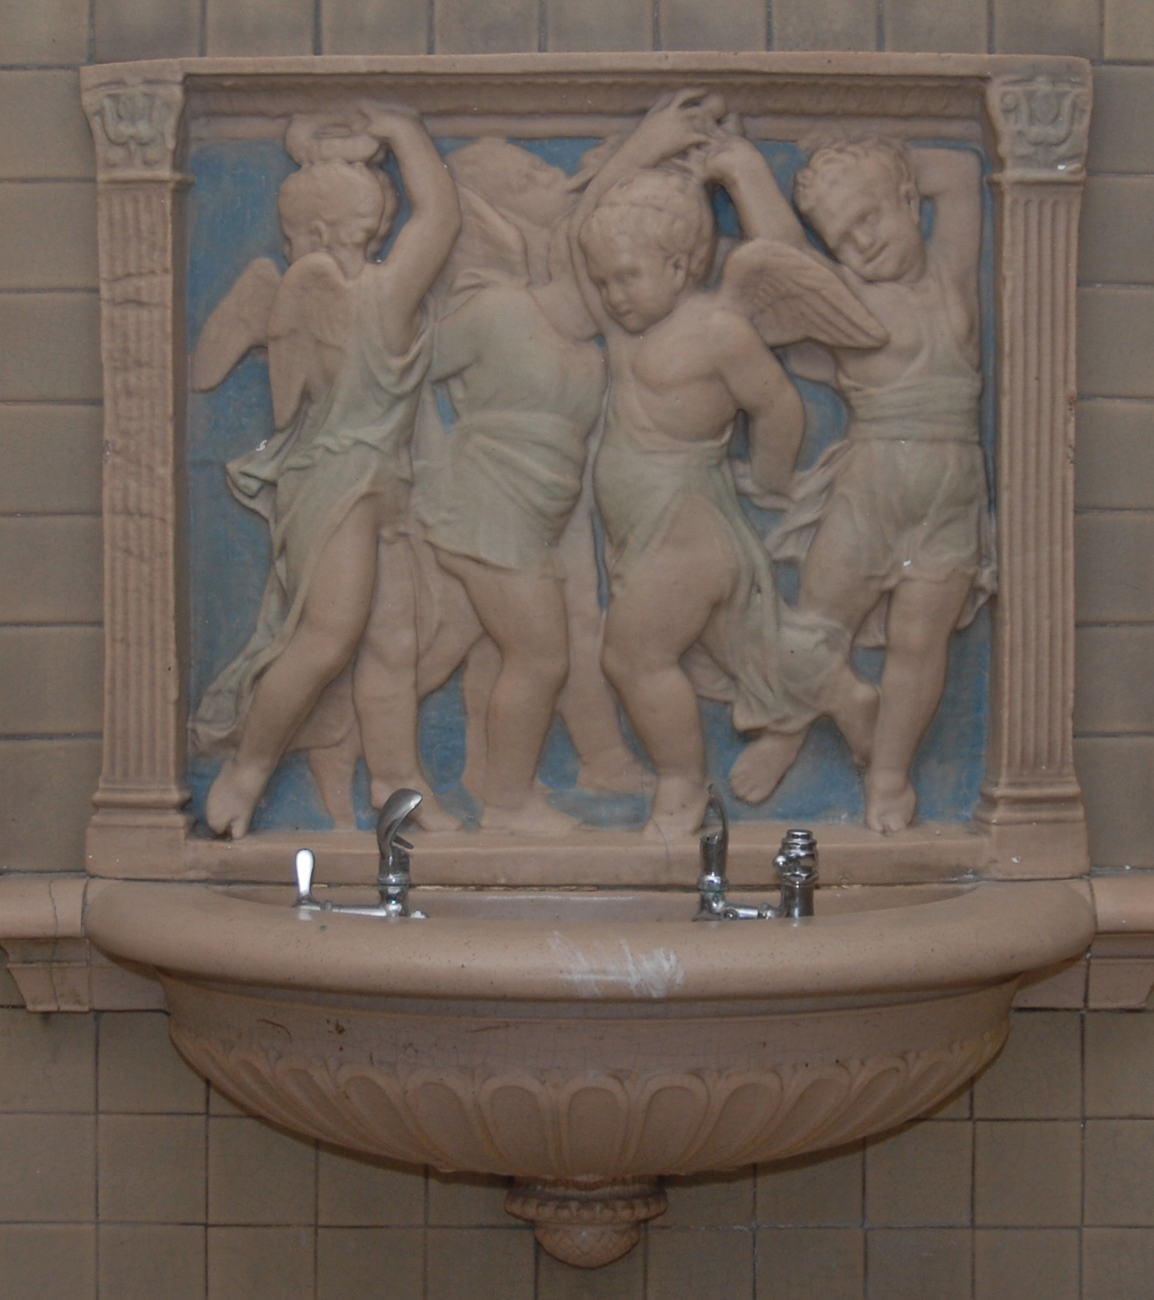 A Donatello Rookwood fountain depicting four dancing and singing cherub boys was donated by the class of 1912. It is located on the first floor in the east (main) corridor, south of the main entrance. / Image and research by Tim Jeffries // Published: 4.28.19